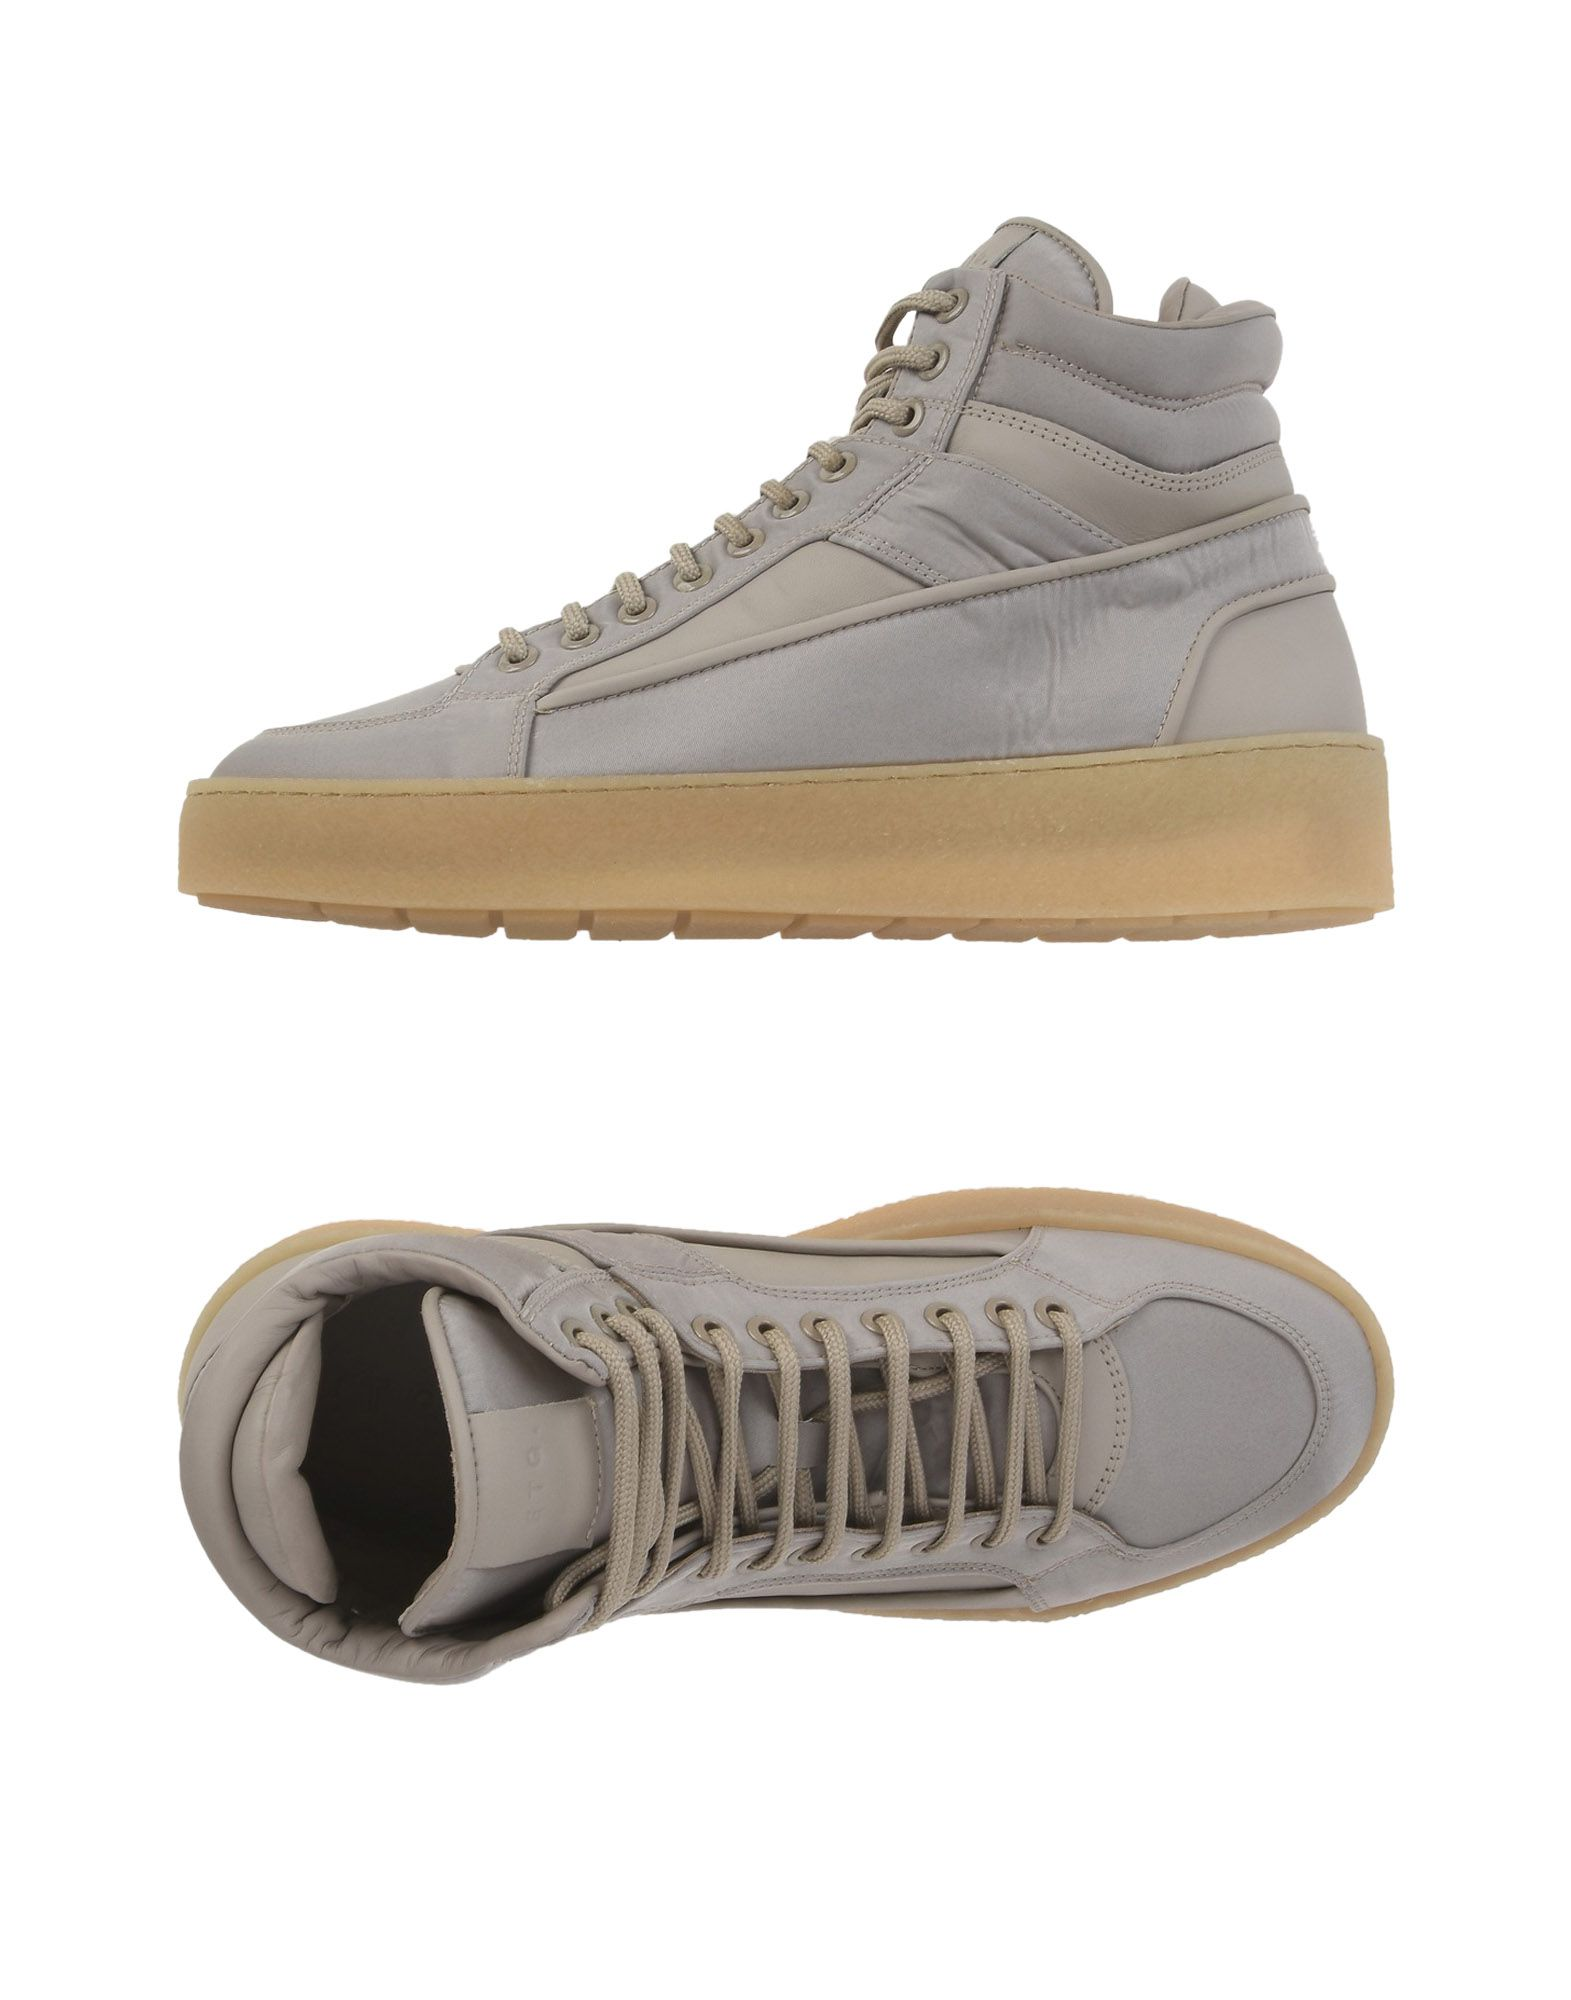 Sneakers Etq Amsterdam  High 2 - Homme - Sneakers Etq Amsterdam  Beige Remise de marque